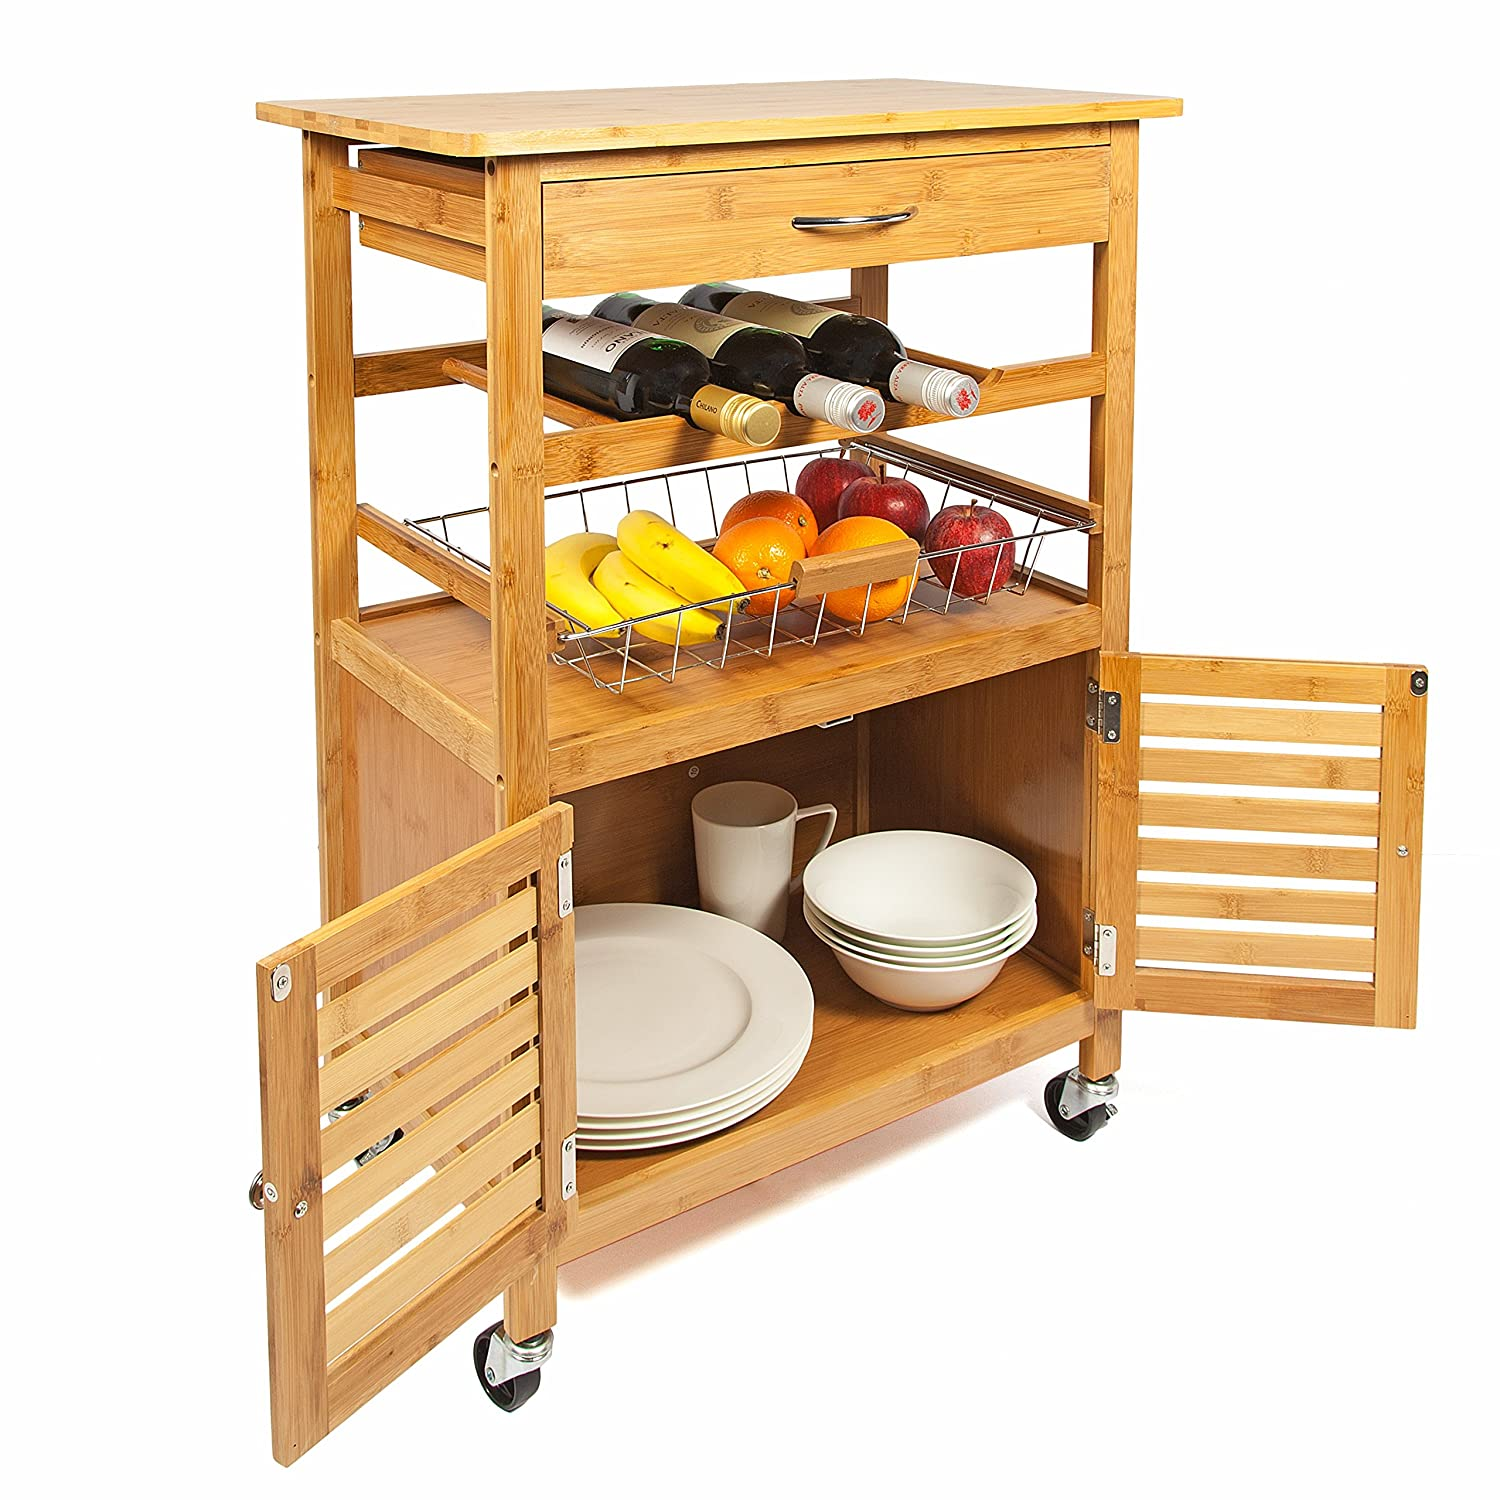 Woodluv Bamboo Kitchen Storage Trolley Cart with Drawer Amazon